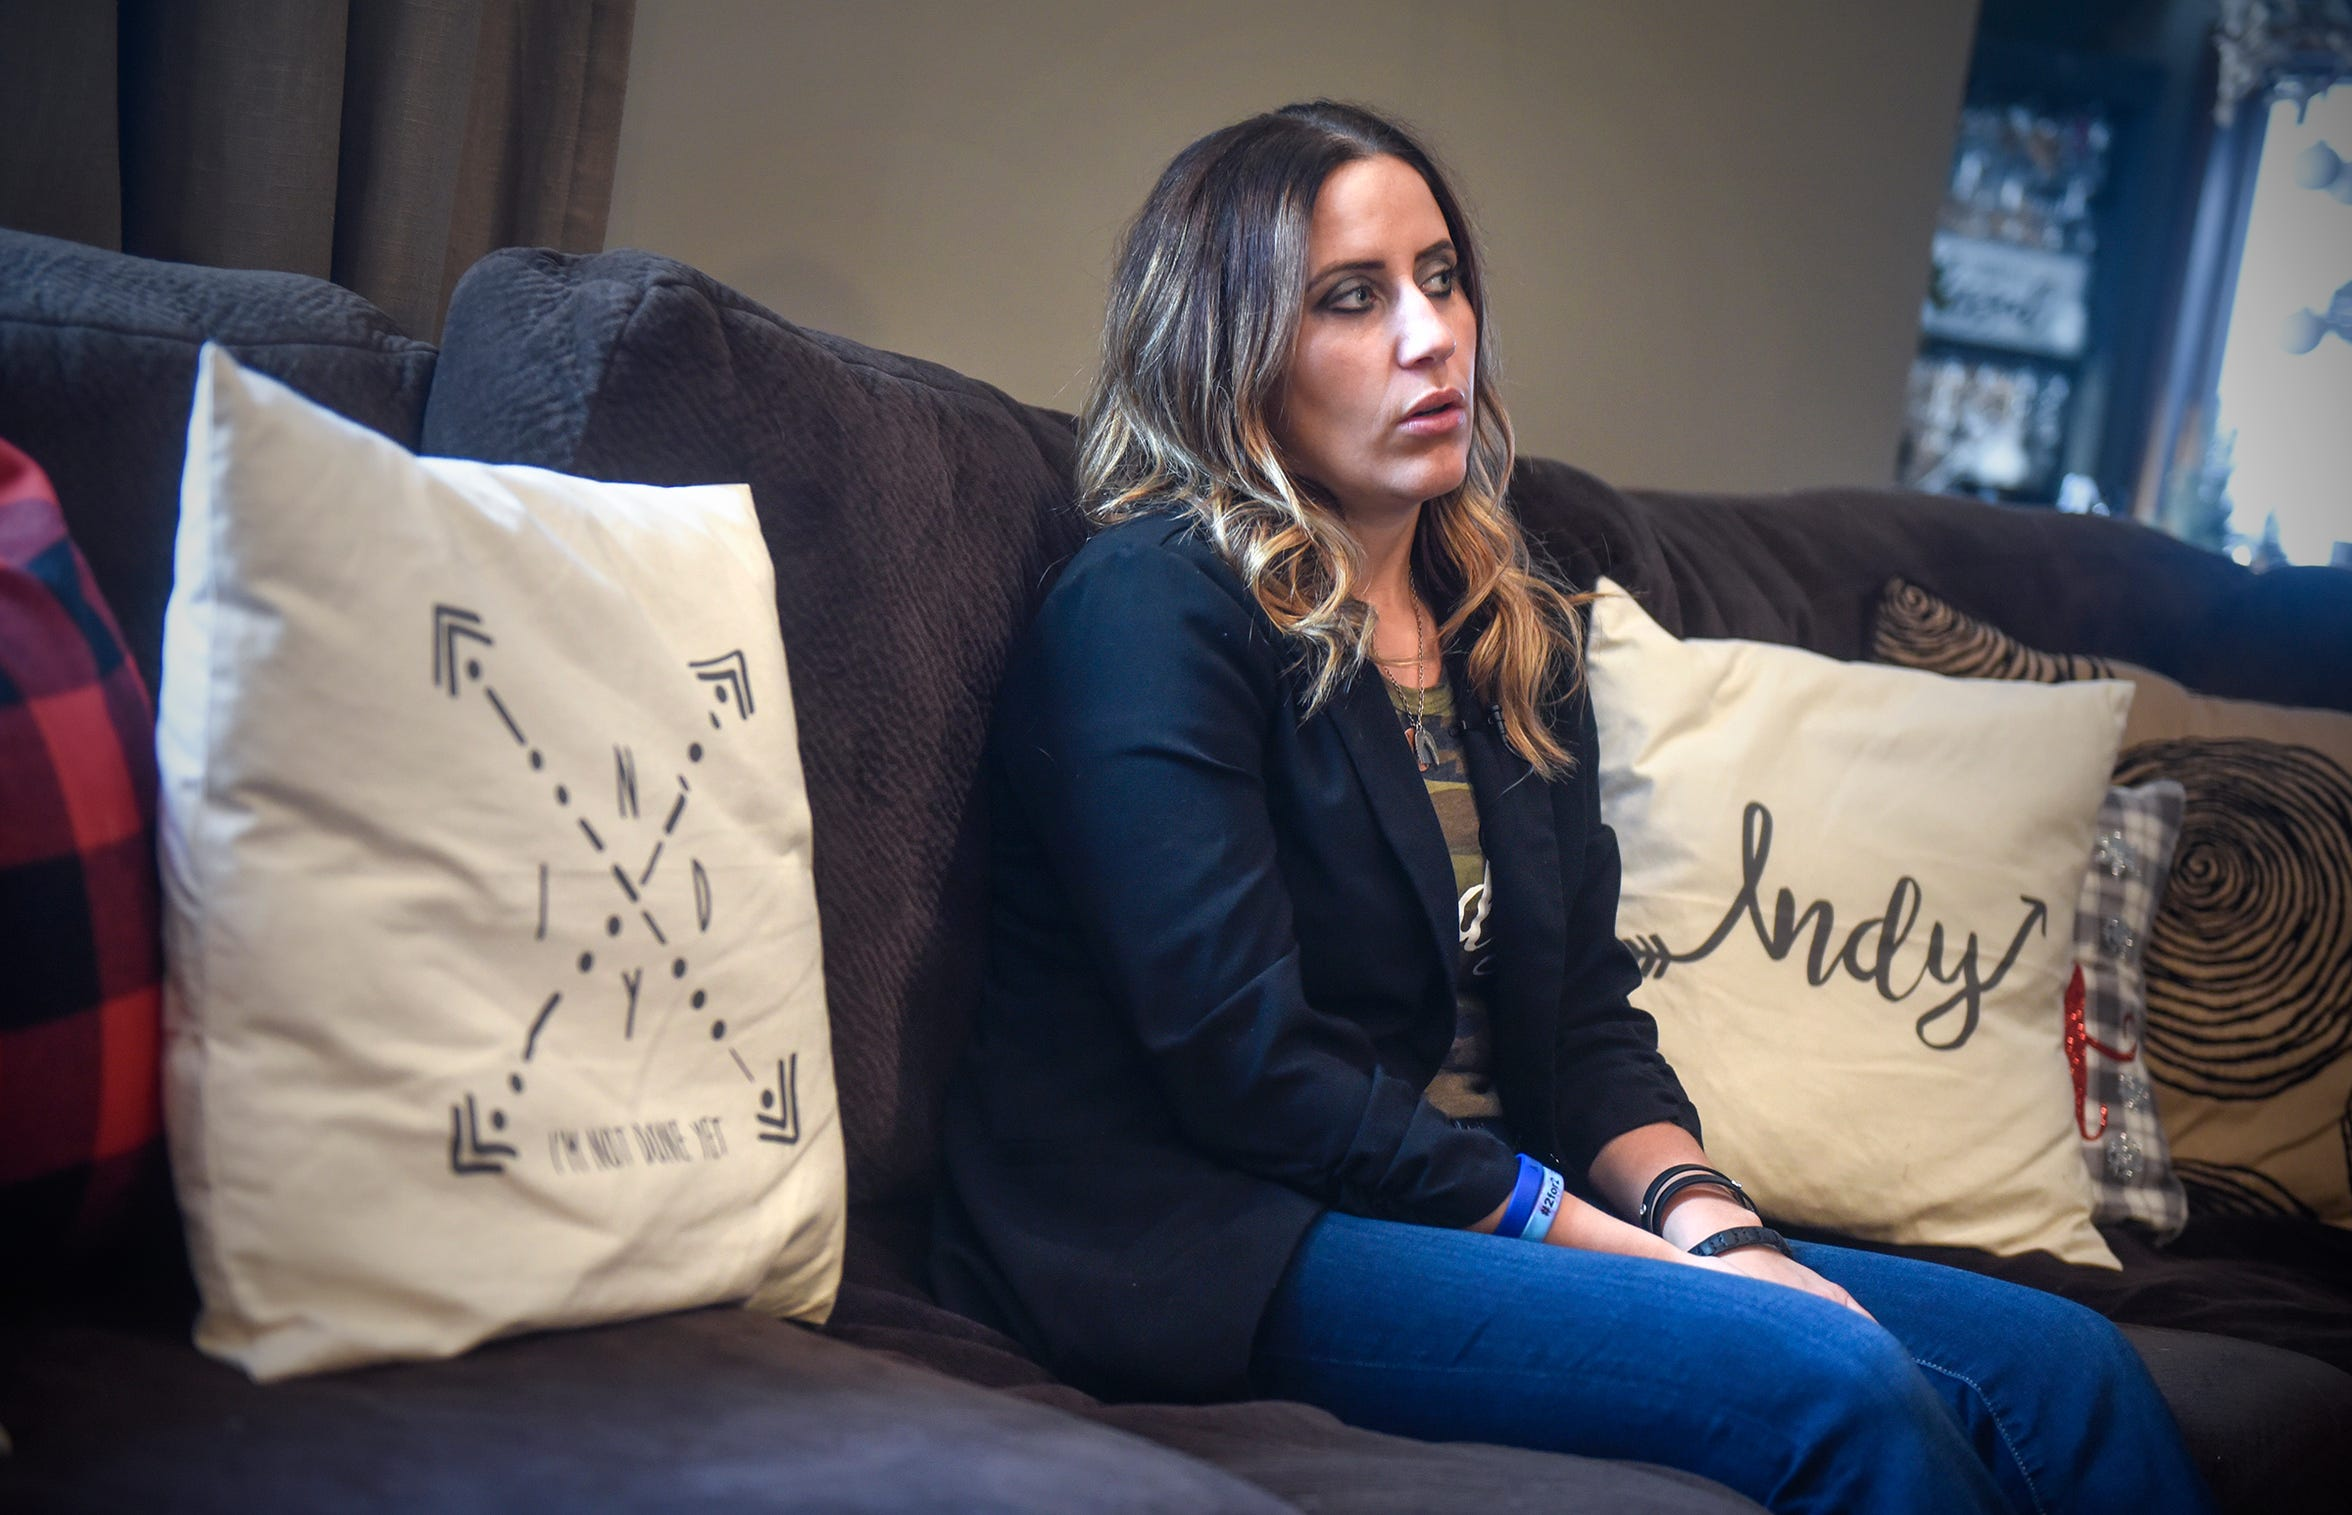 INDY Foundation founder Kayla Strand talks about her late husband, Kyle, during an interview Thursday, Dec. 13, at her home.